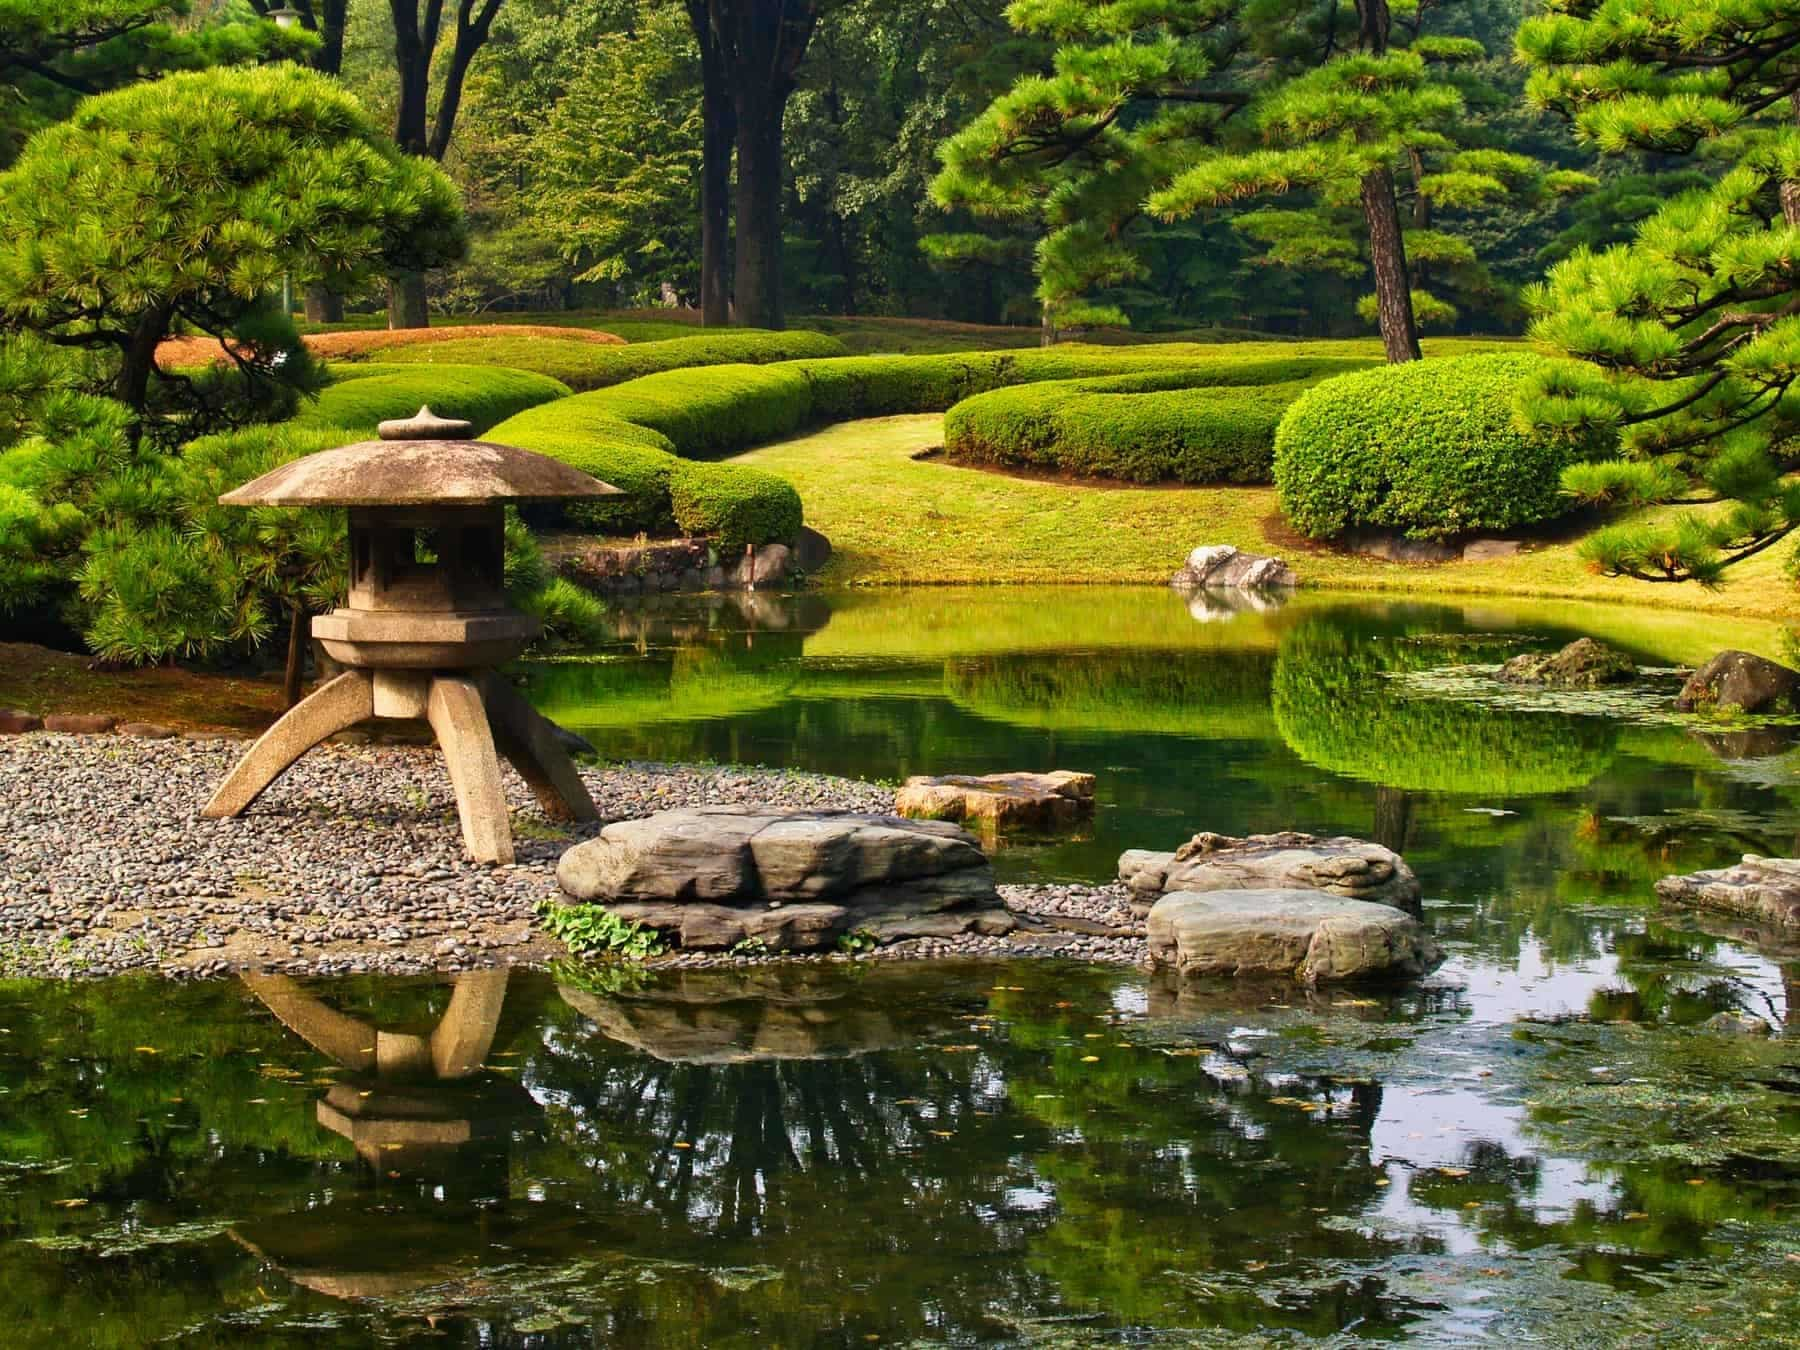 Traditional Japanese formal gardens, including water feature, sculptured trees and hedges, Imperial Palace Gardens,Kōkyo Higashi-gyoen, Tokyo, Japan.